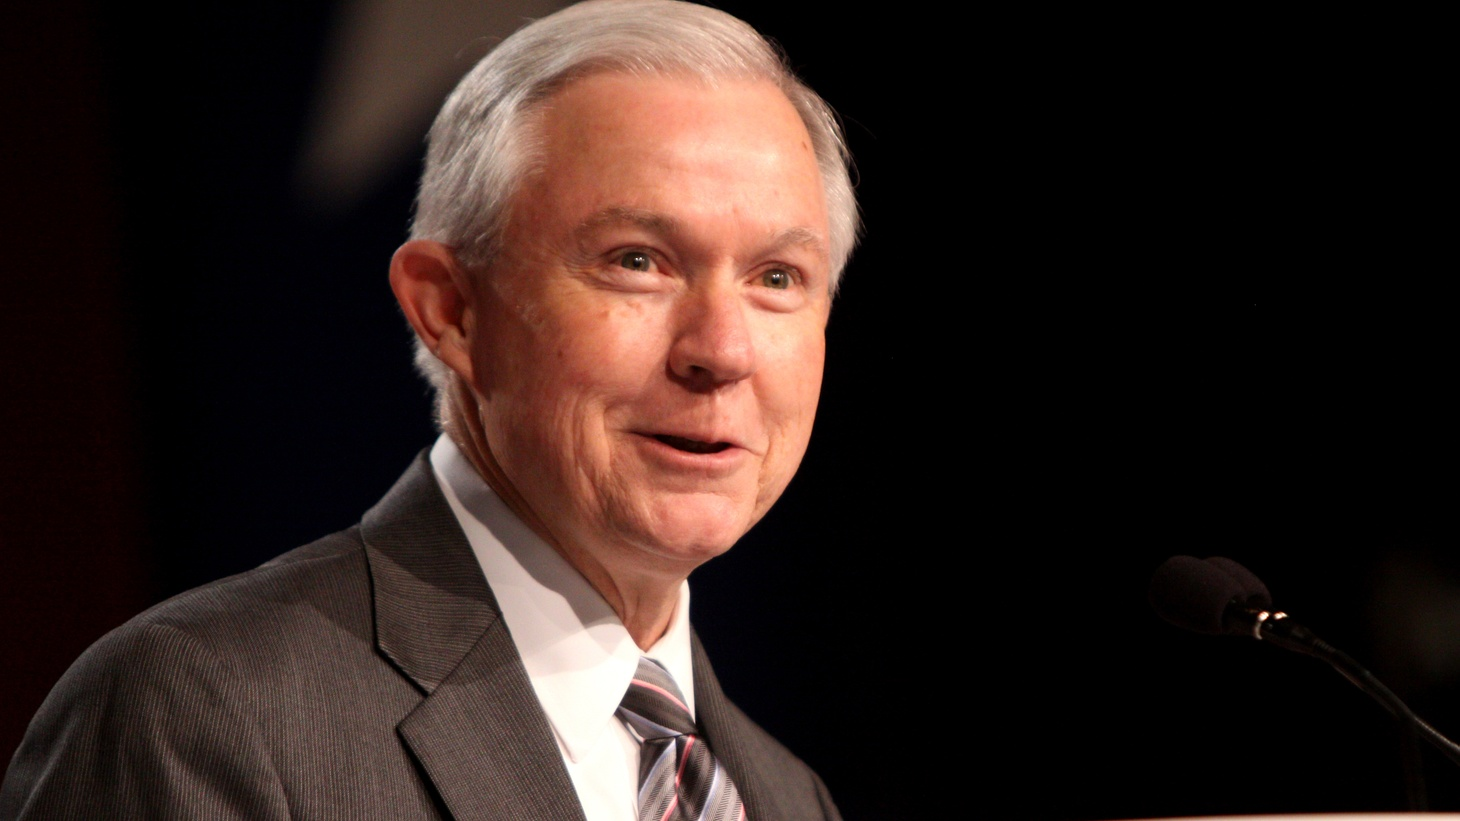 US Attorney General Jeff Sessions visited Los Angeles today to speak at meeting of the Criminal  Justice Legal Foundation. But his trip was met with protests.